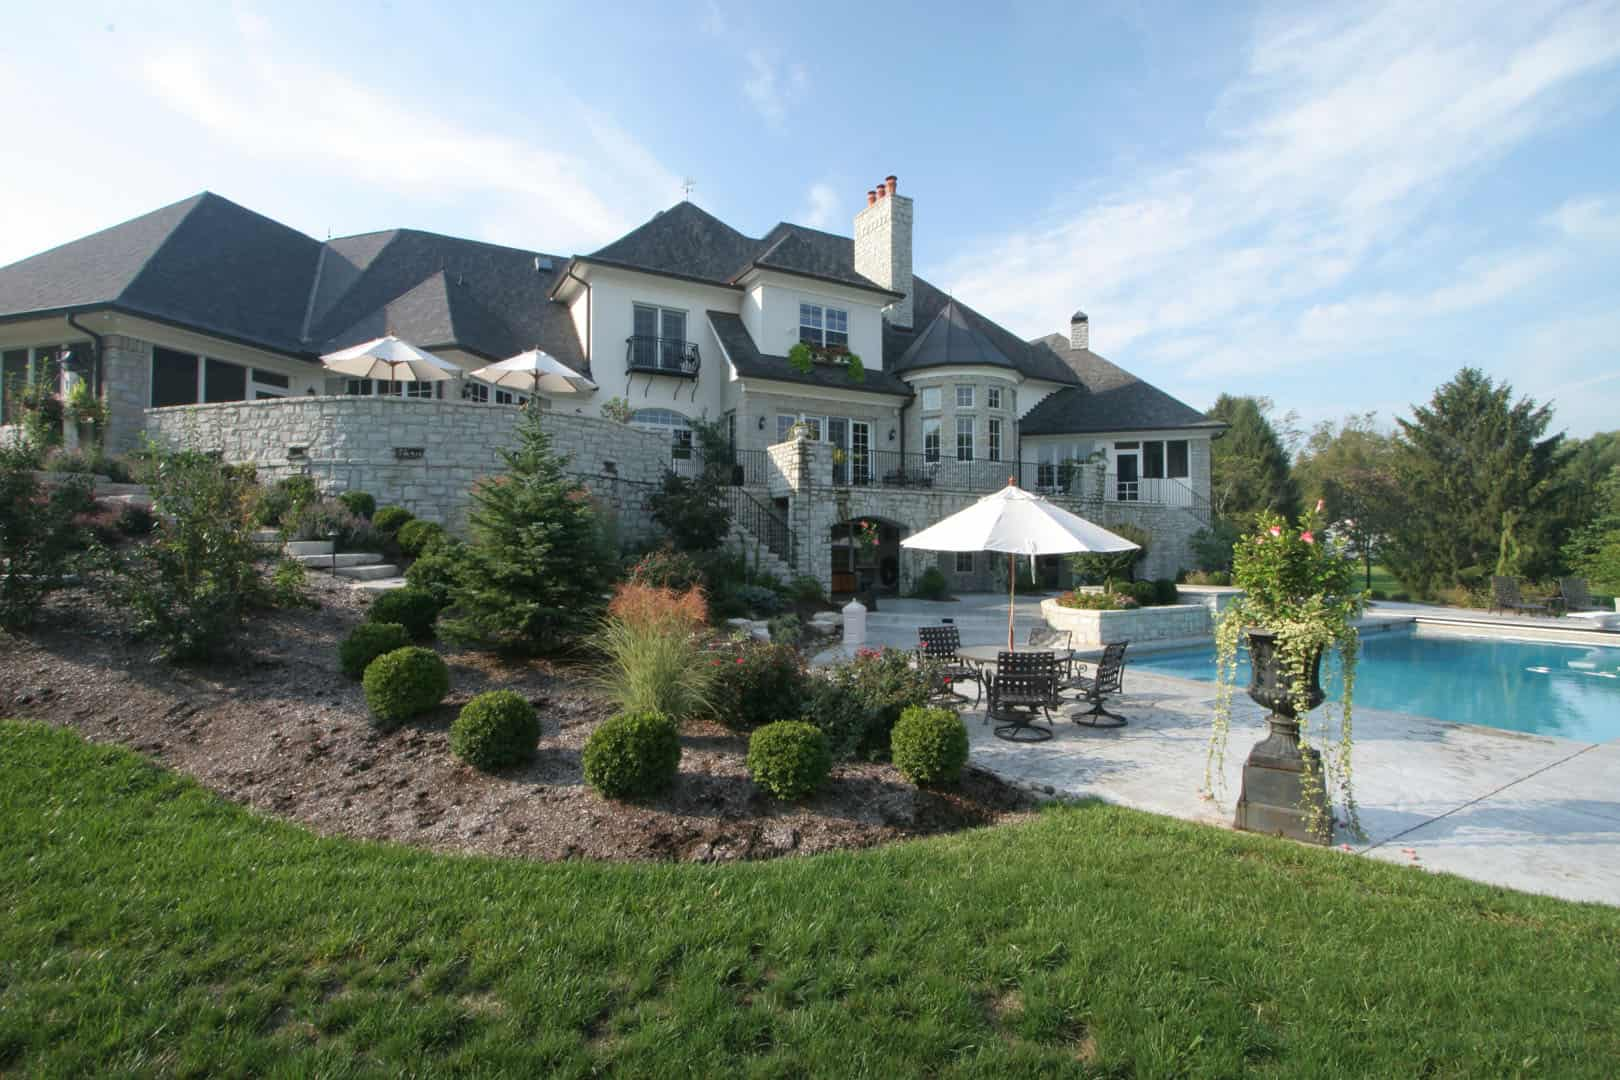 large house with pool and landscaping